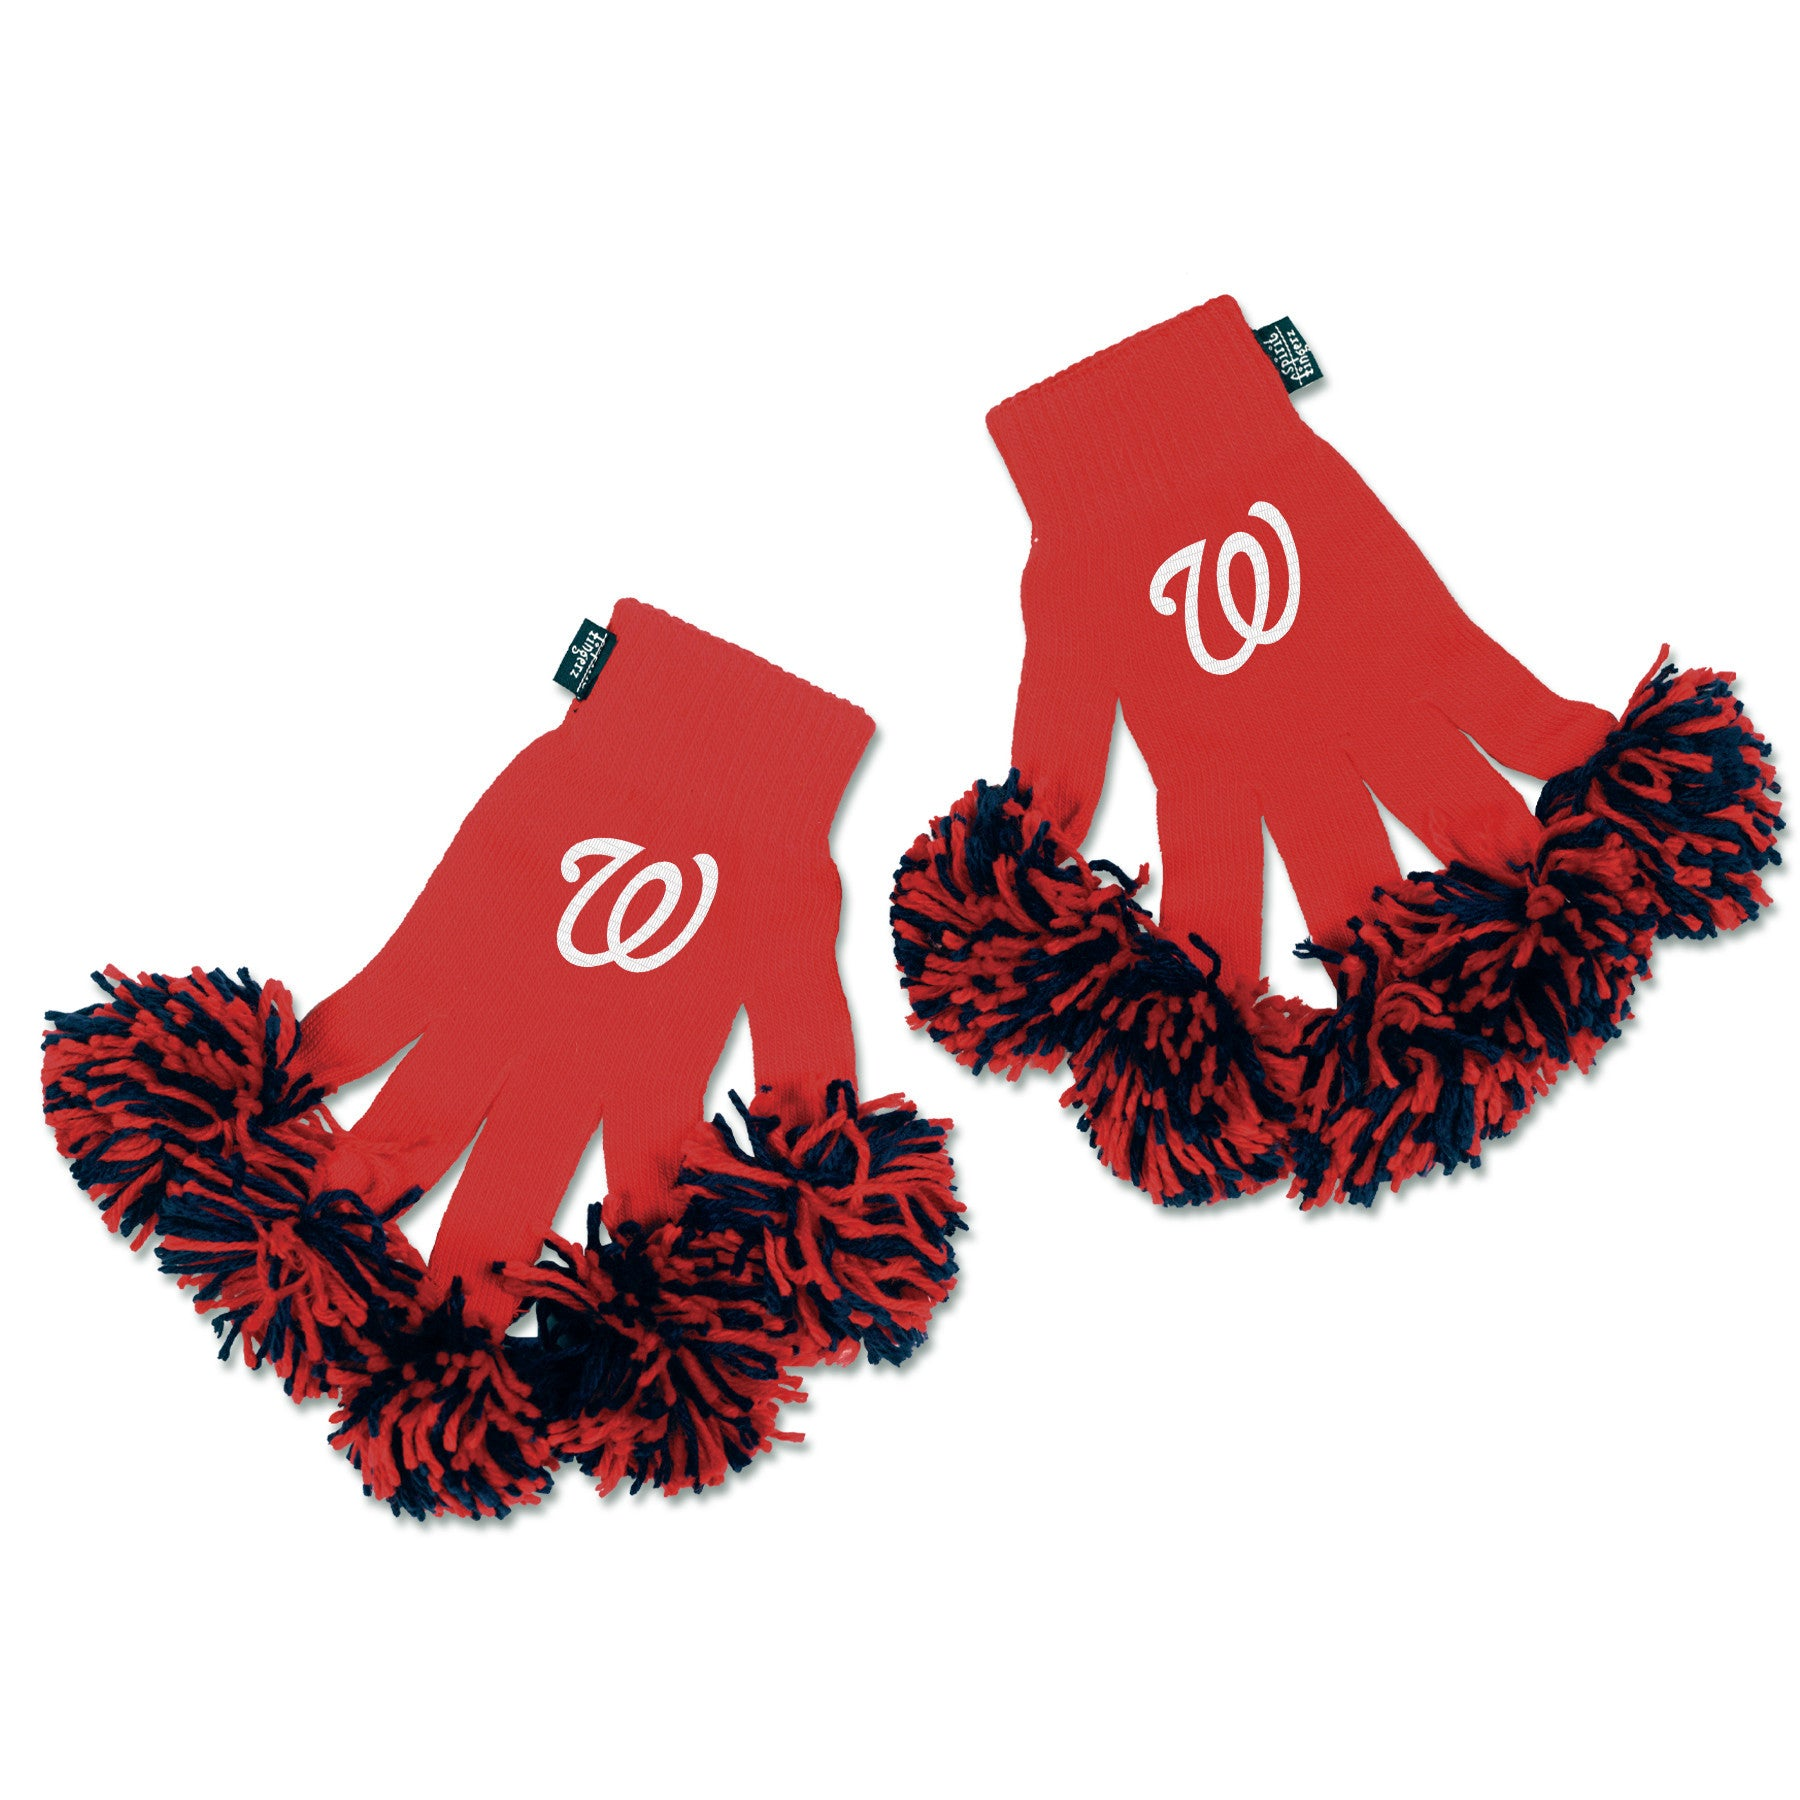 Washington Nationals MLB Spirit Fingerz Cheerleading Pom-Pom Gloves